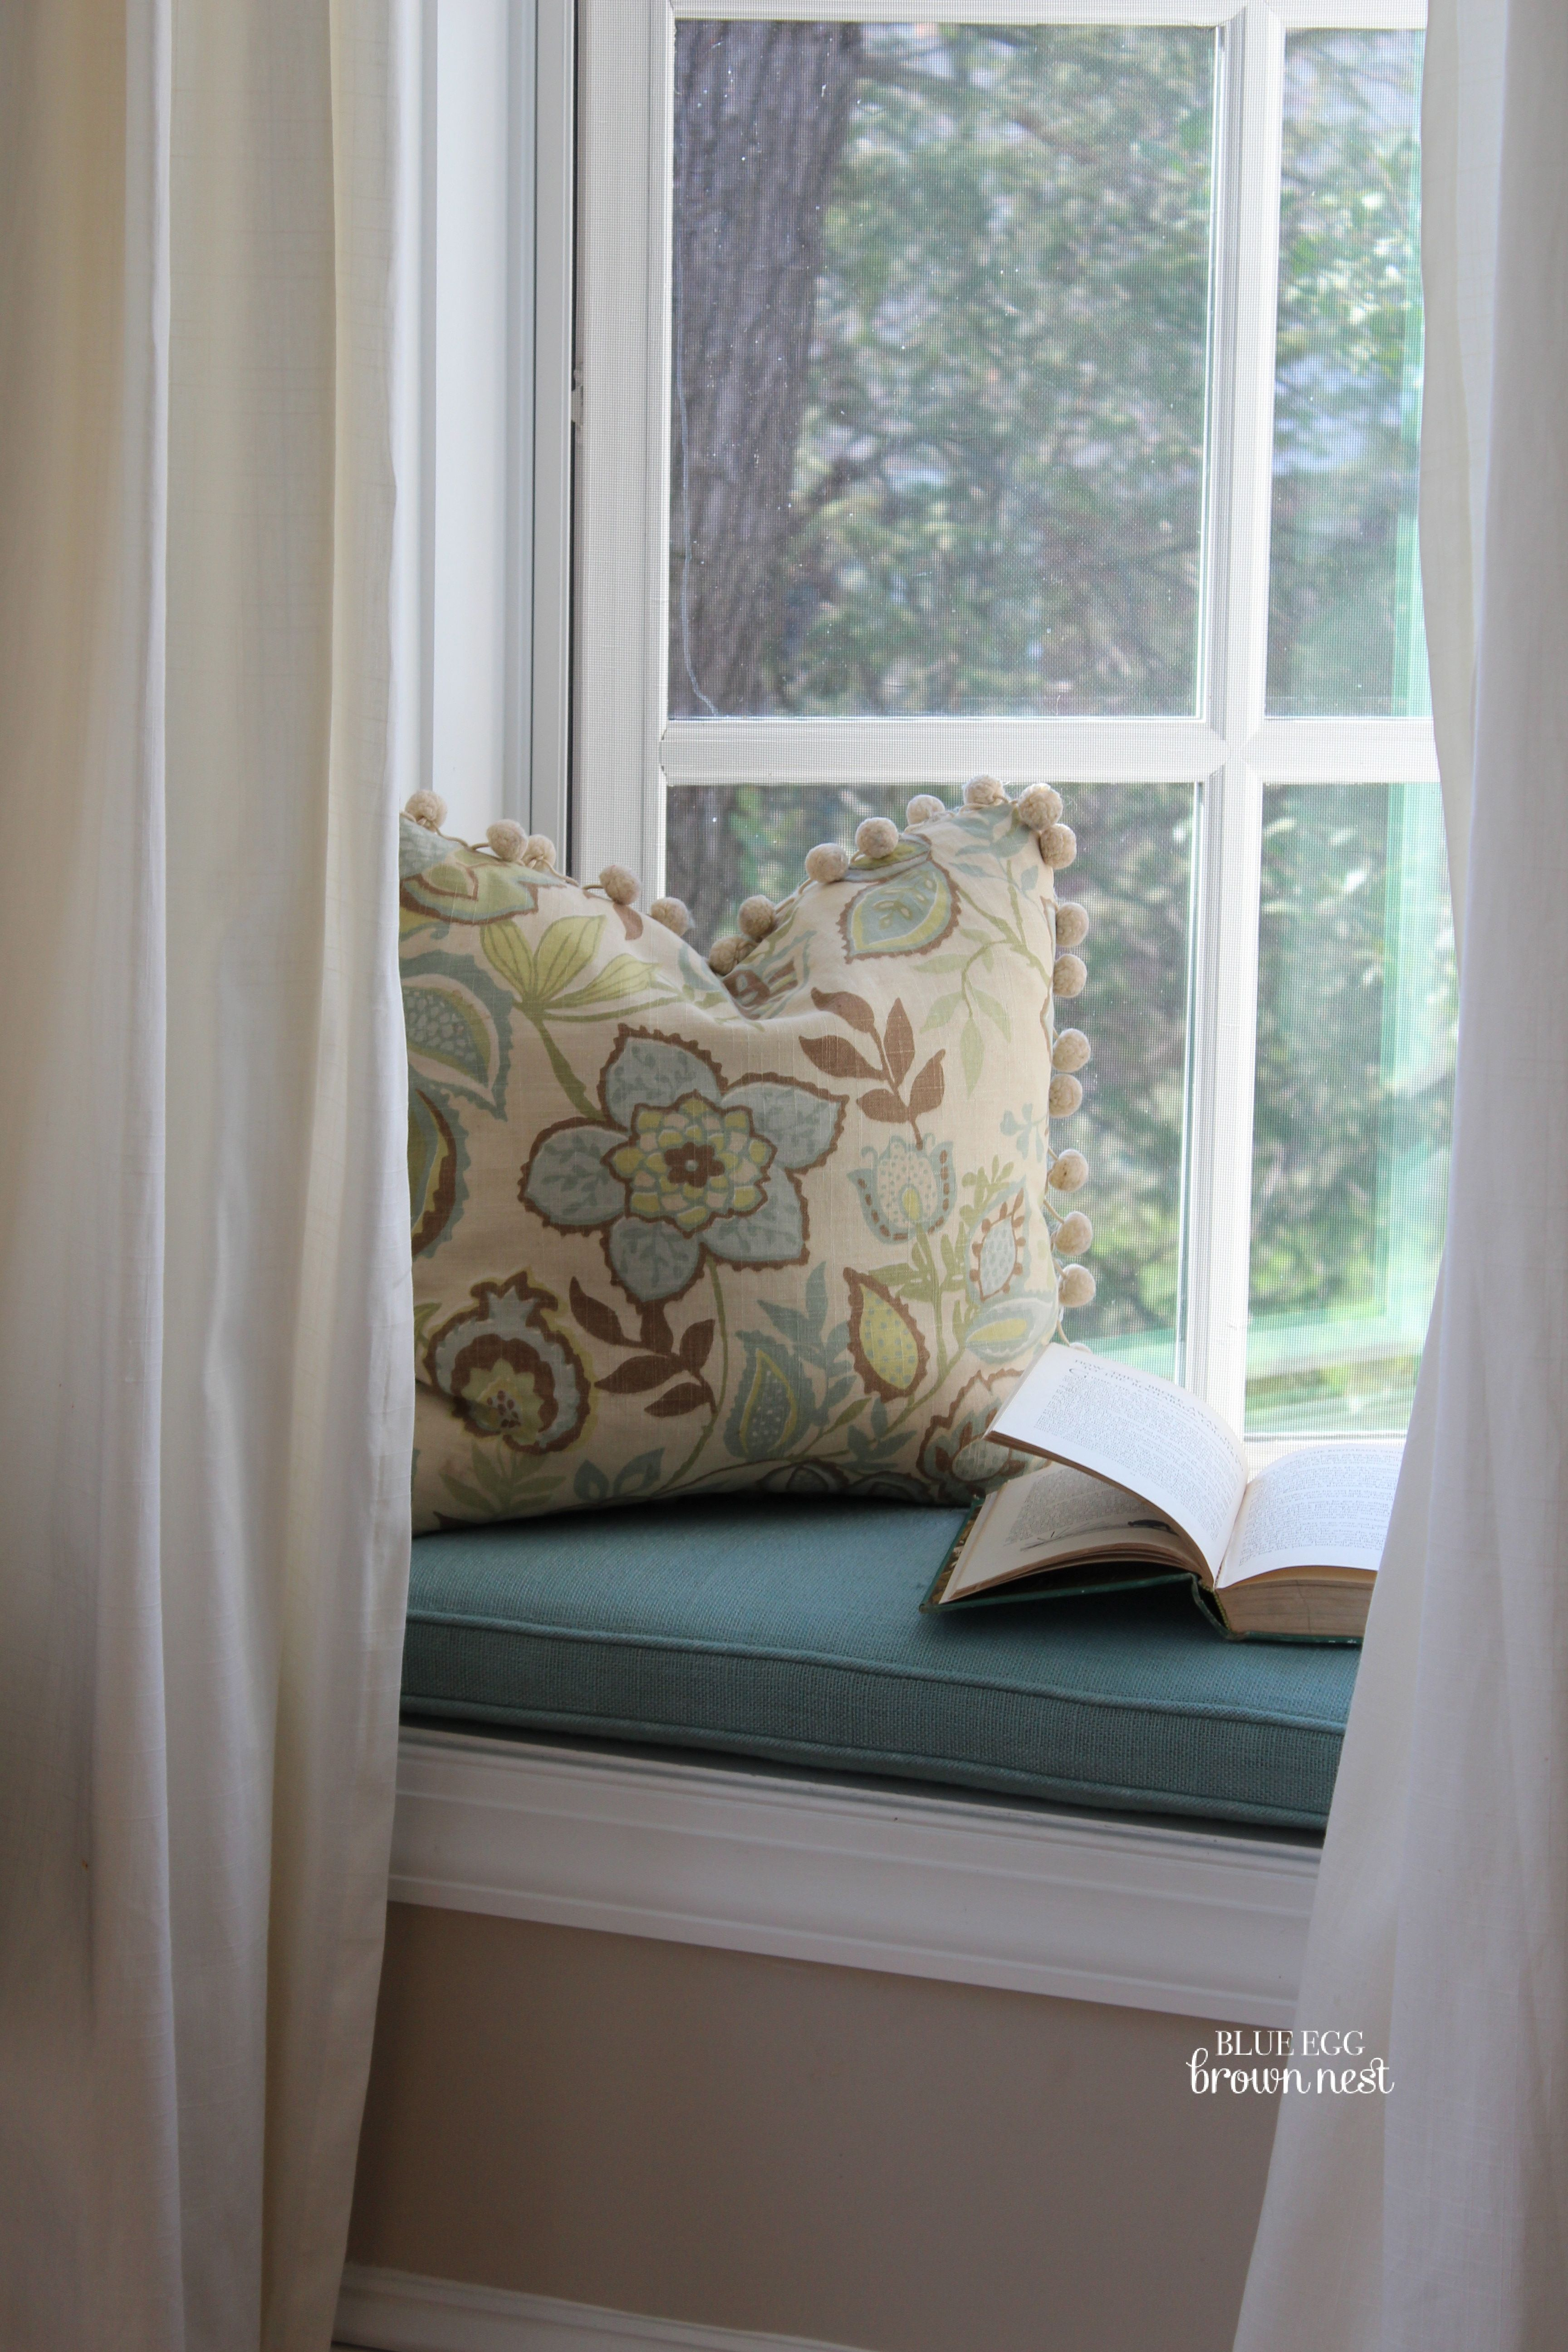 How to make bay window cushions - Cool Images About Window Seat Vignettes On Pinterest Window With Bay Window Seating